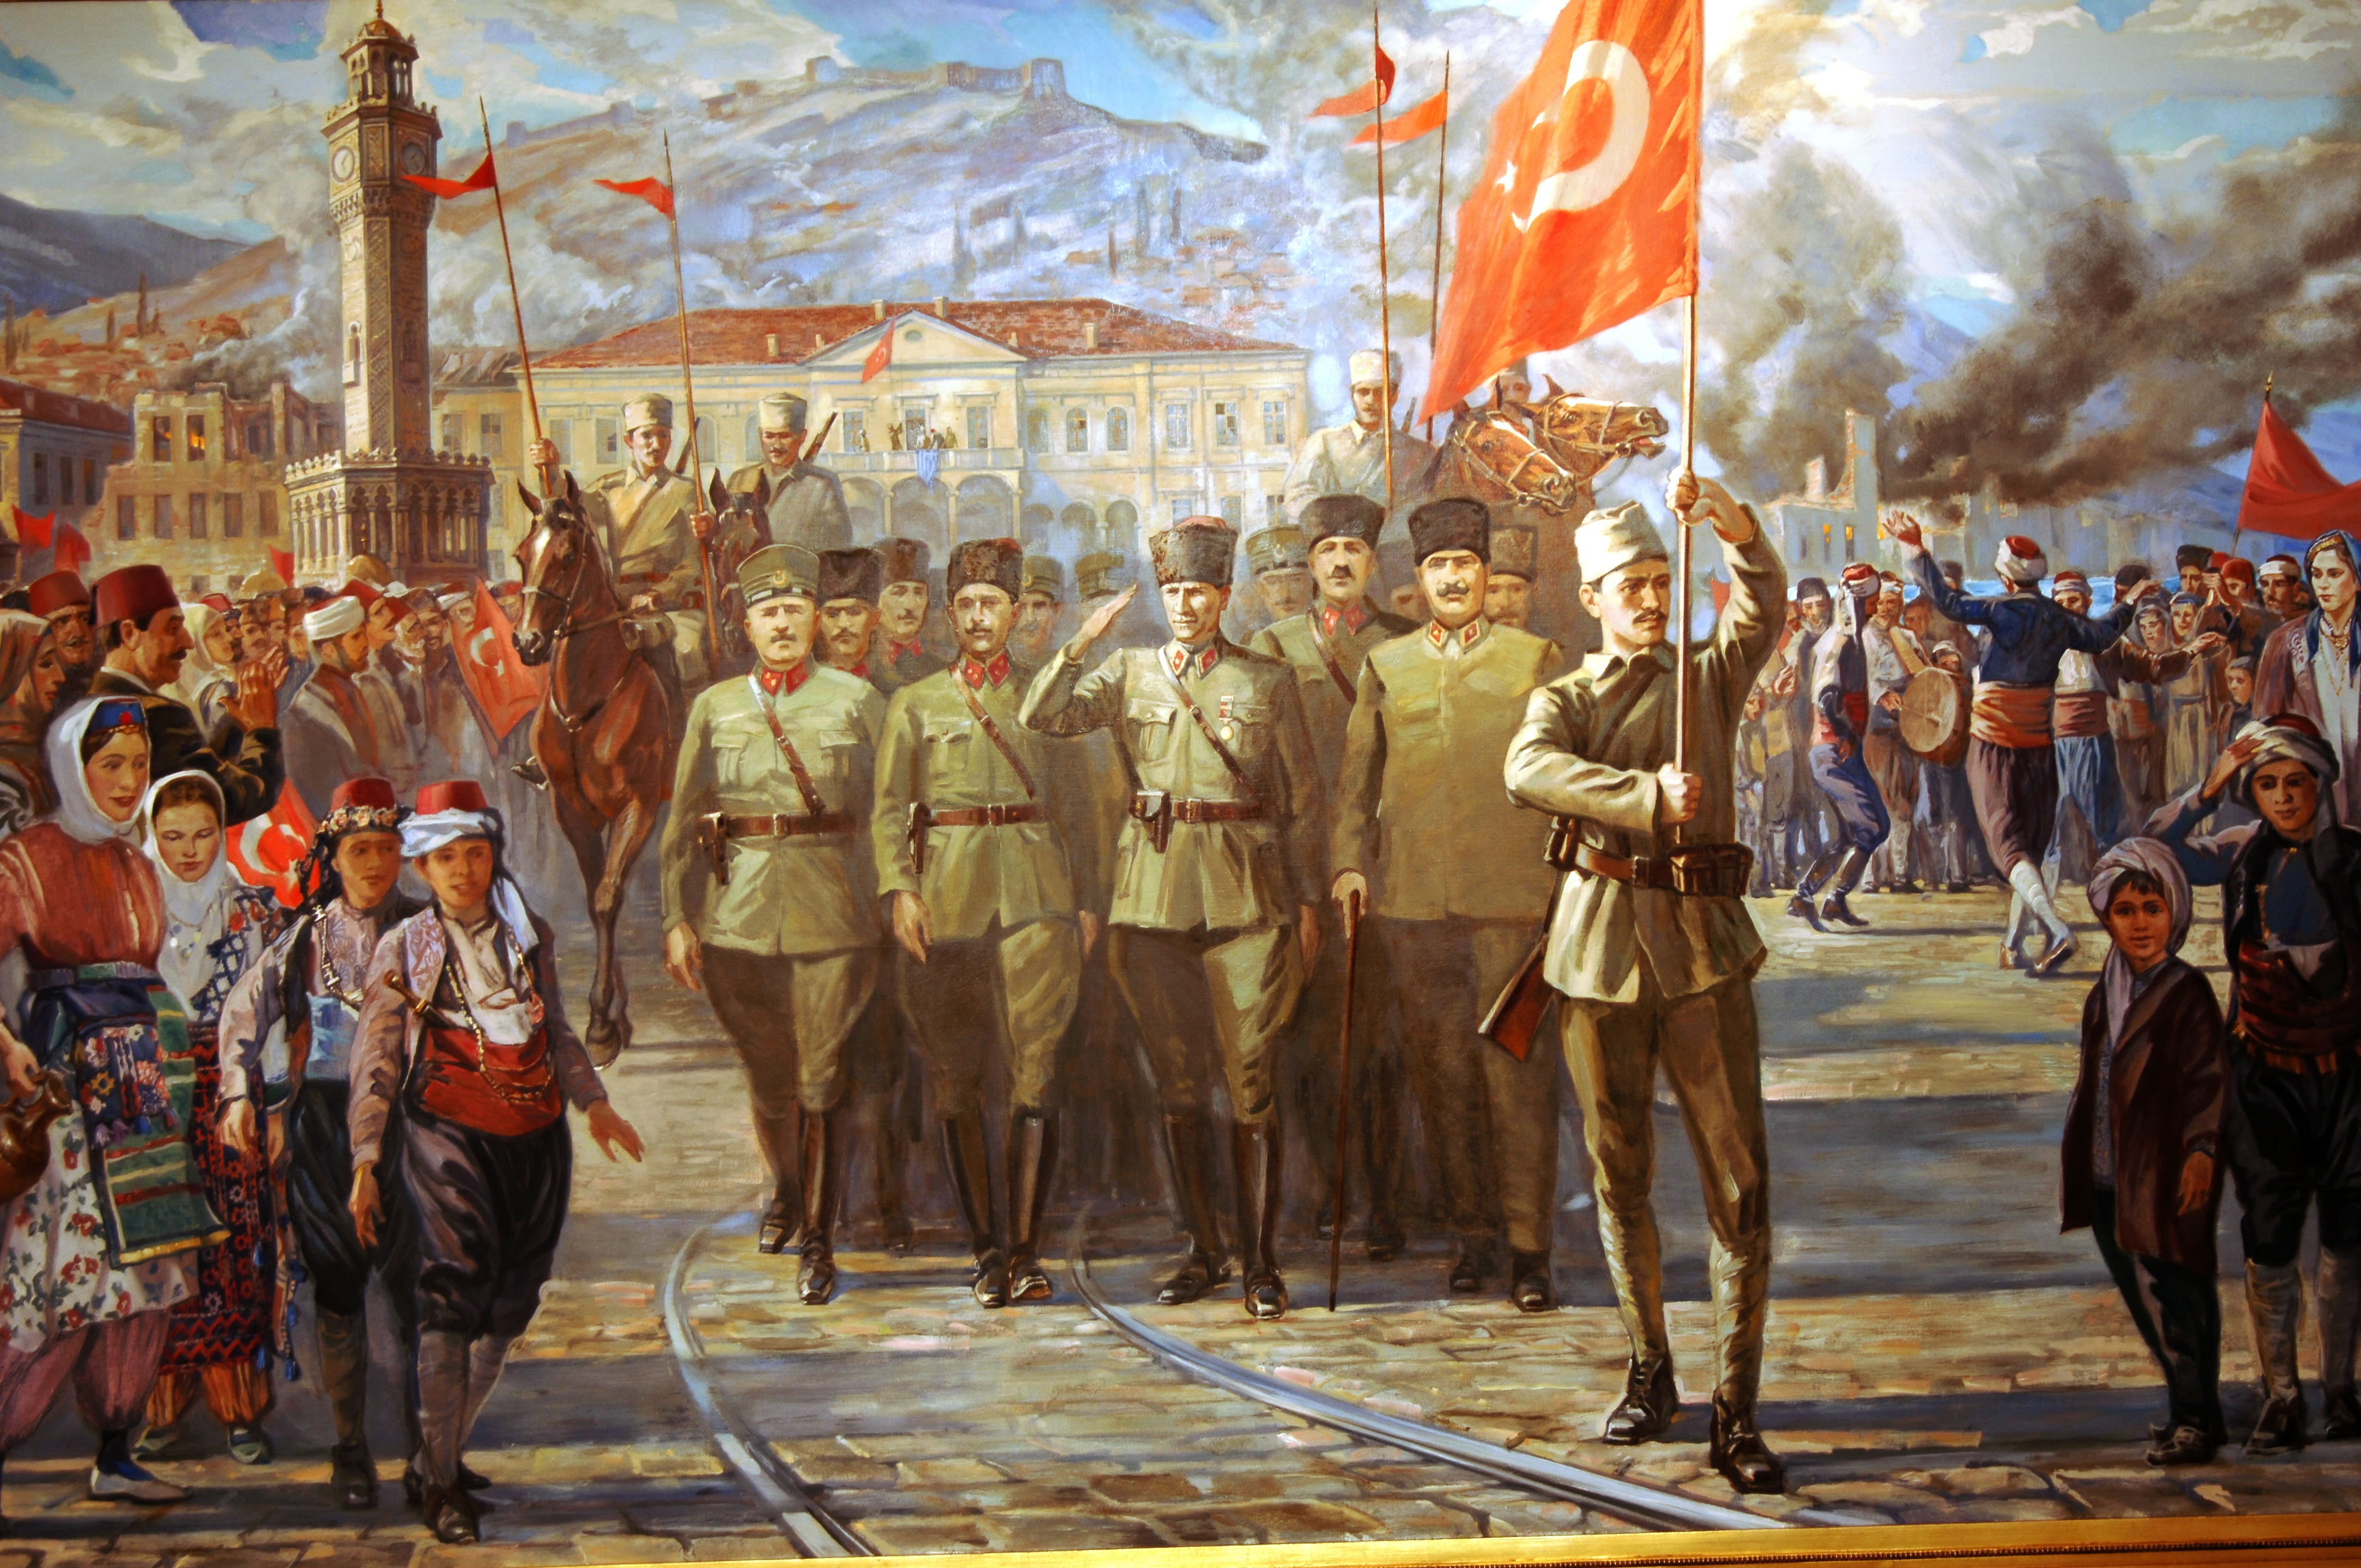 an analysis of the womens emancipation of the kemalists in turkey